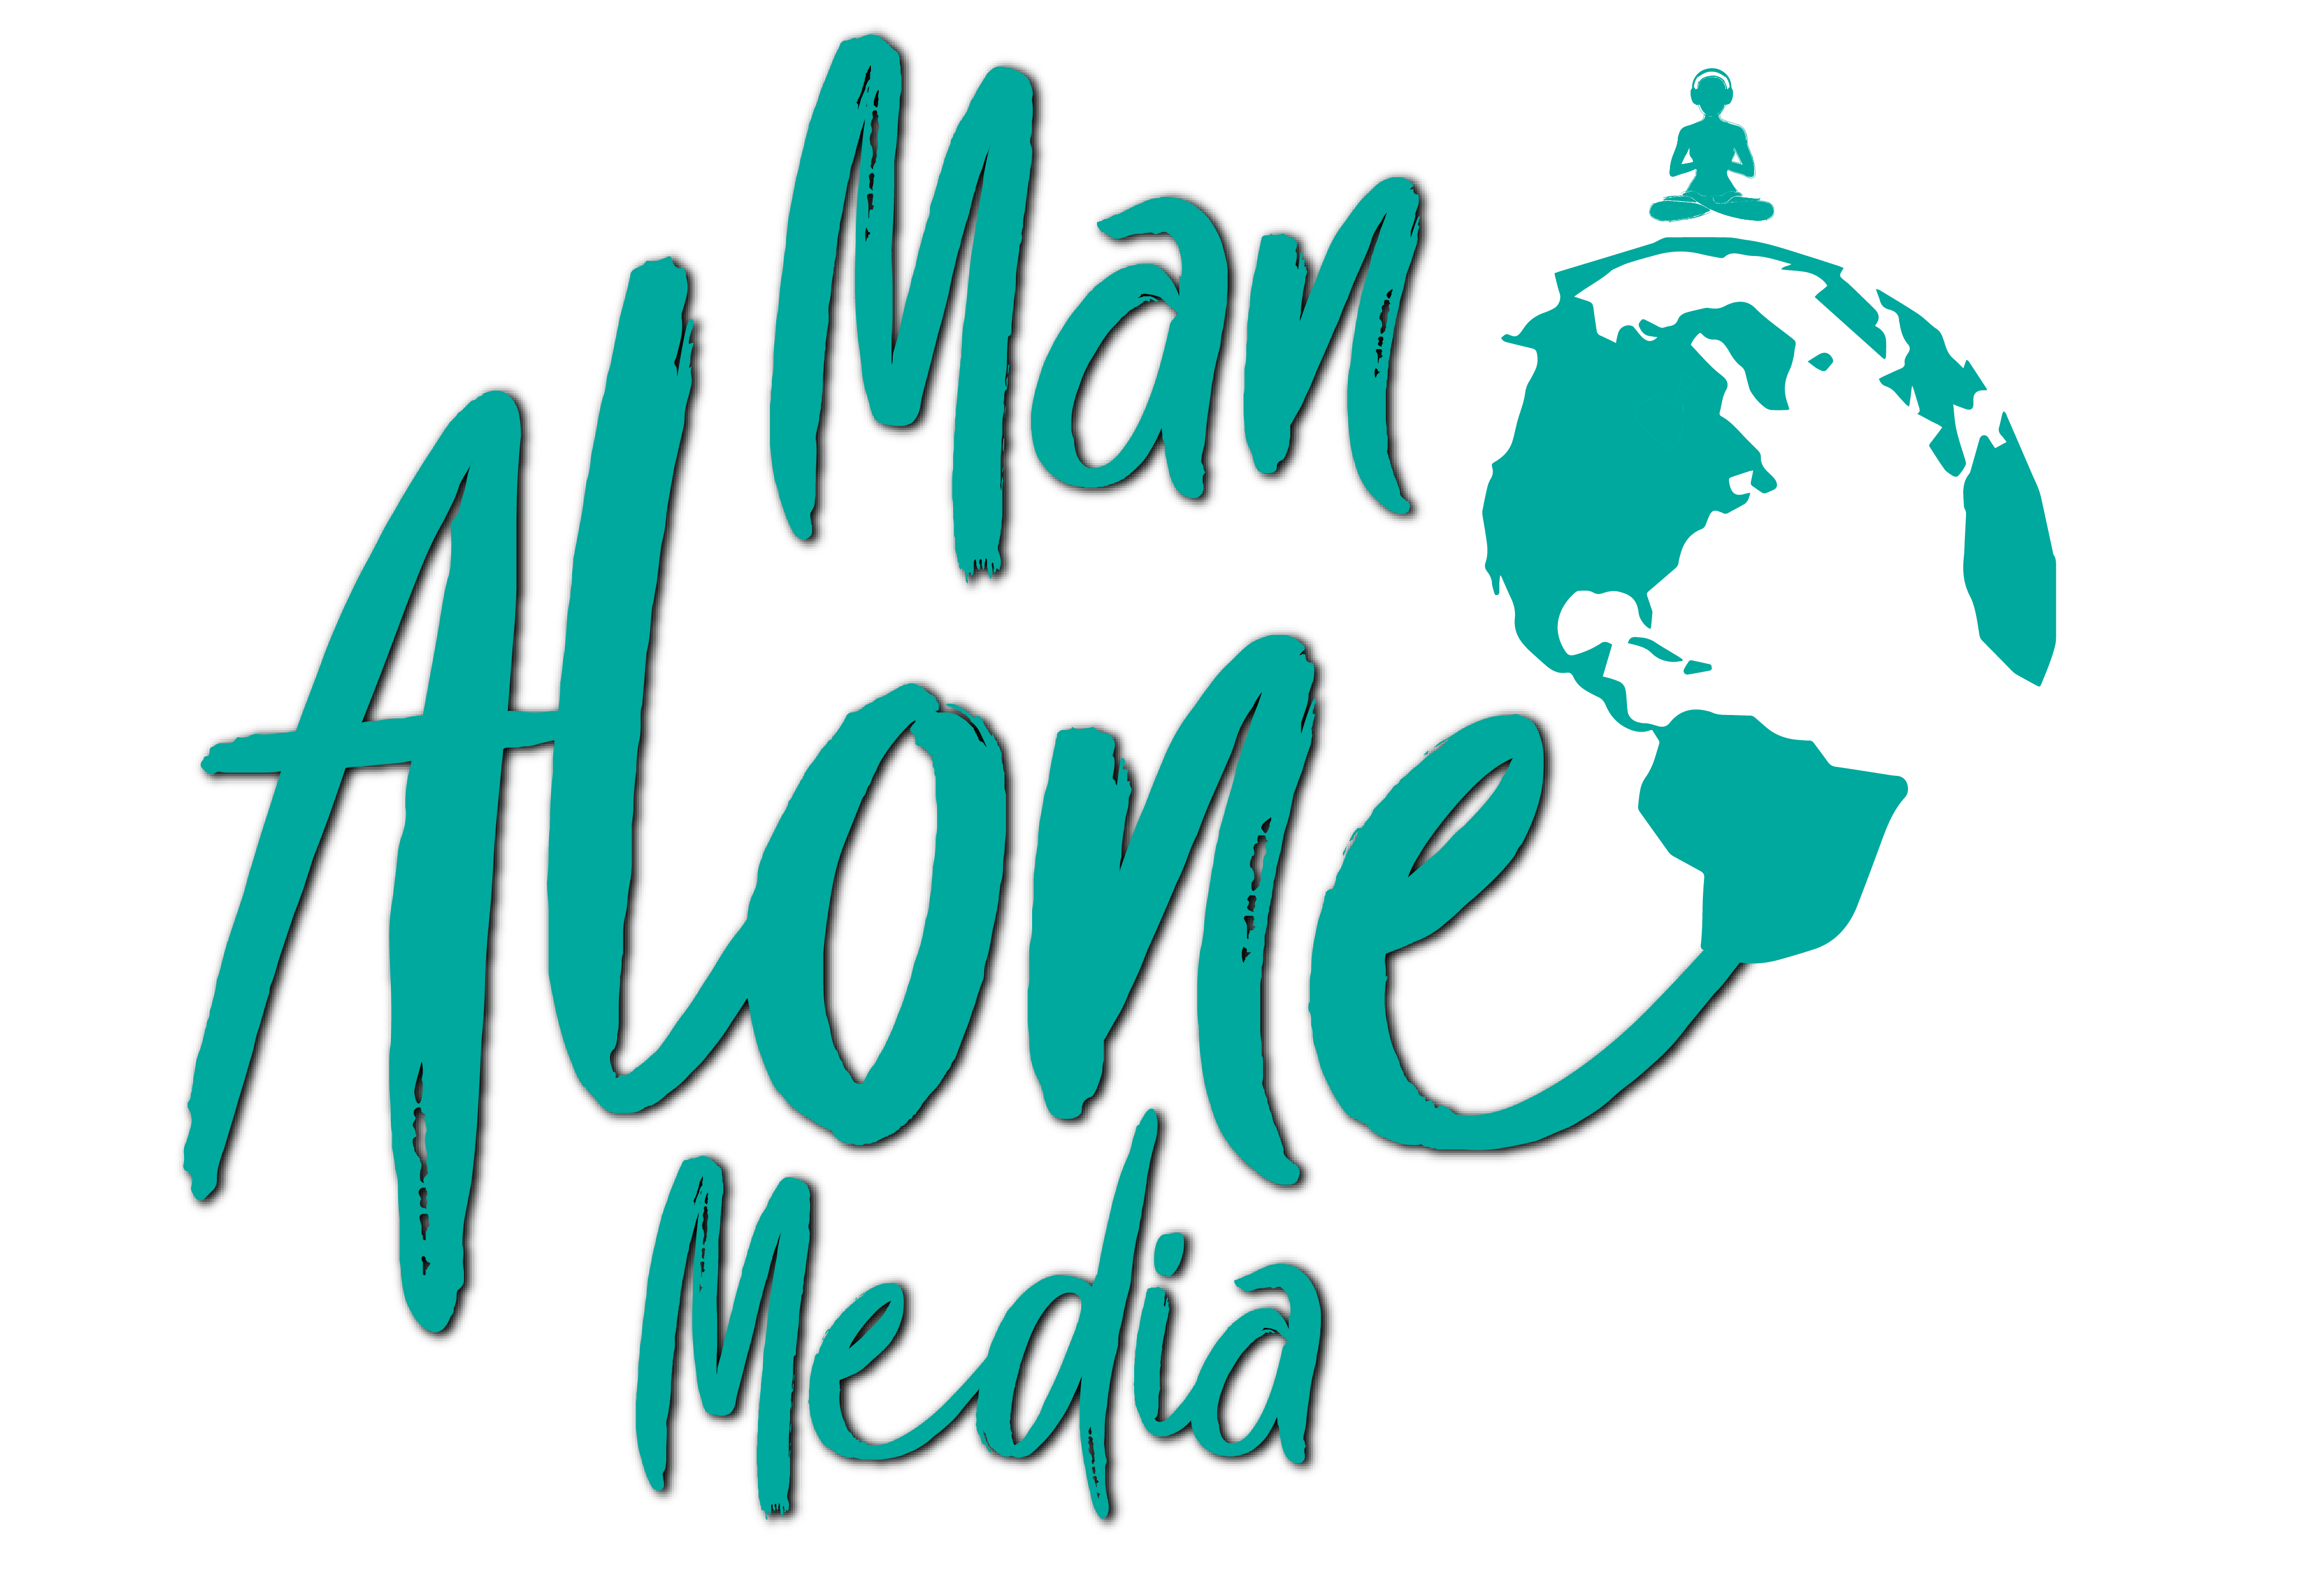 Man-Alone-Media-LOGO-2019-03